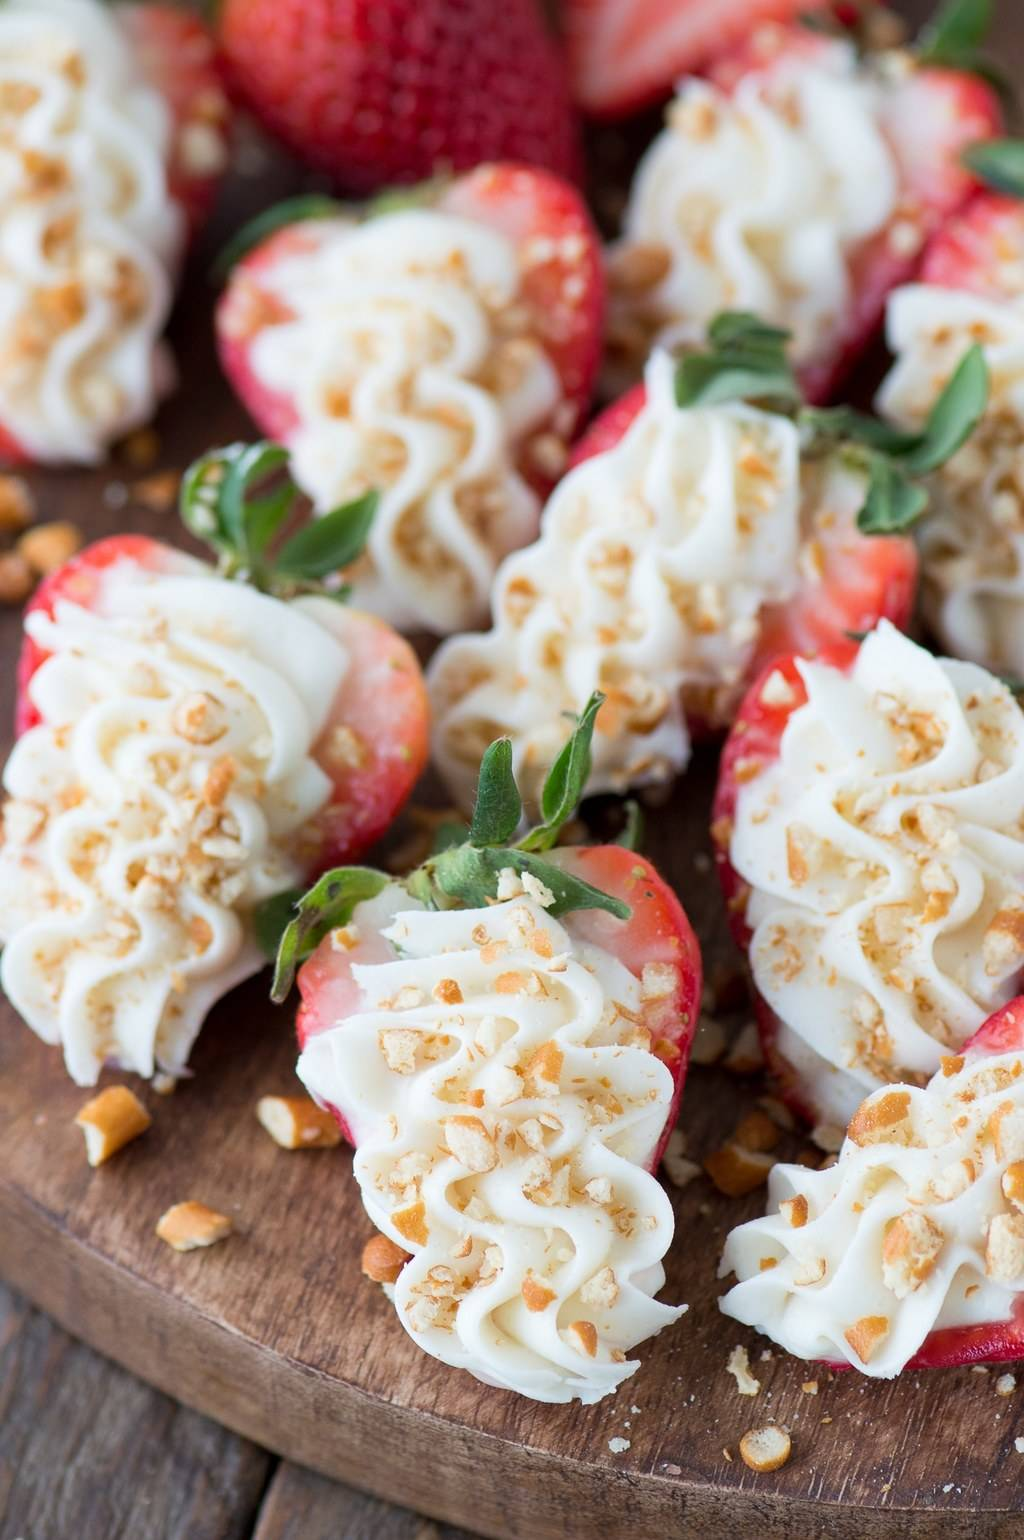 Strawberry Pretzel Cheesecake Bites by The First Year